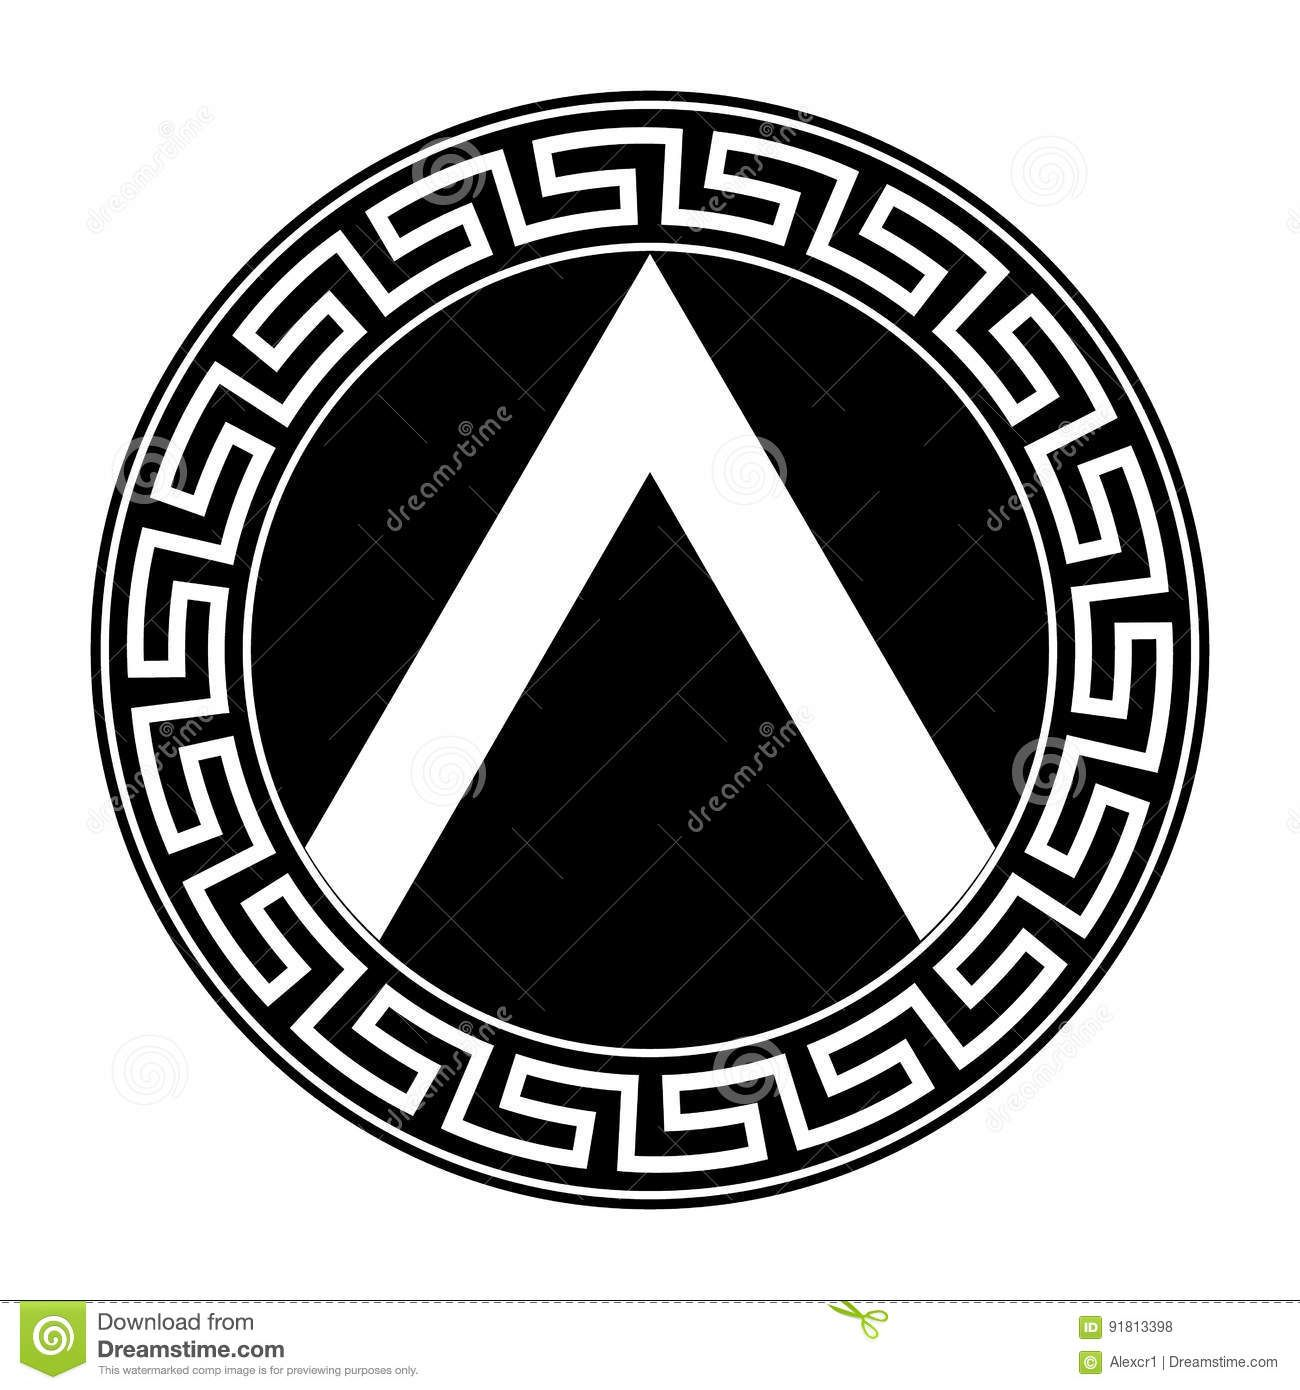 It is an image of Revered Spartan Shield Drawing